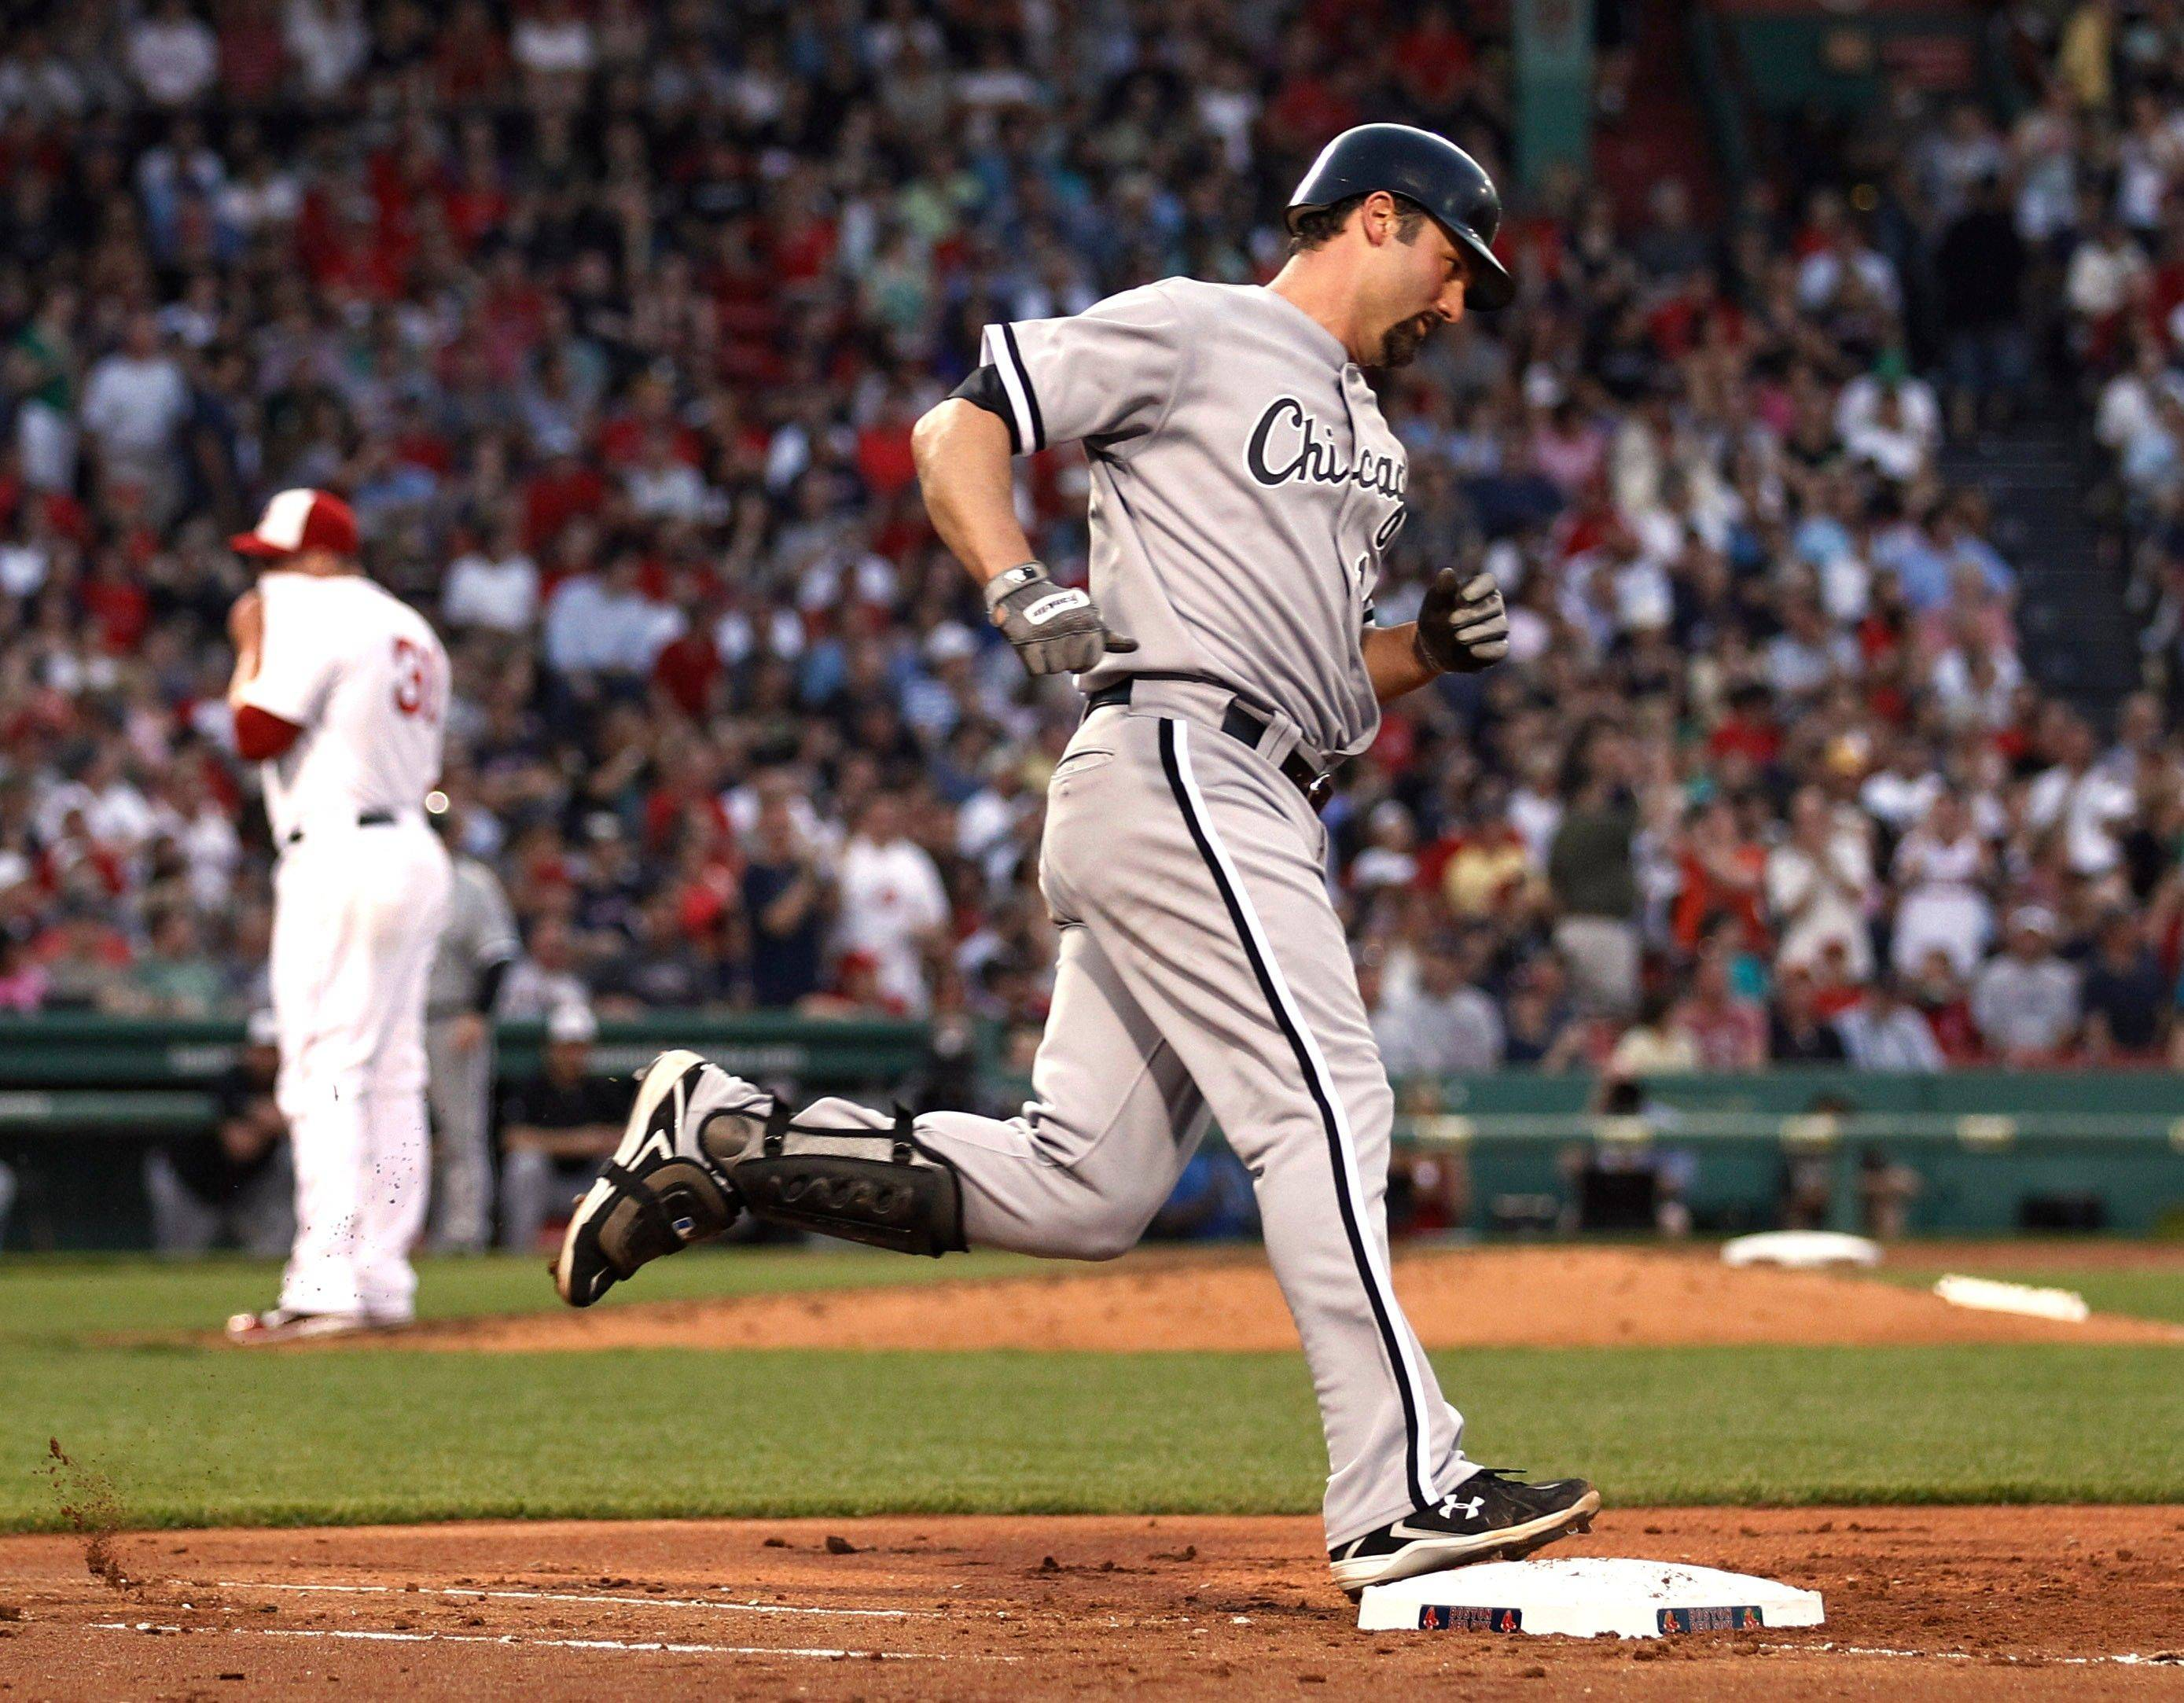 The White Sox' Paul Konerko rounds the bases after his home run in the third inning Monday.